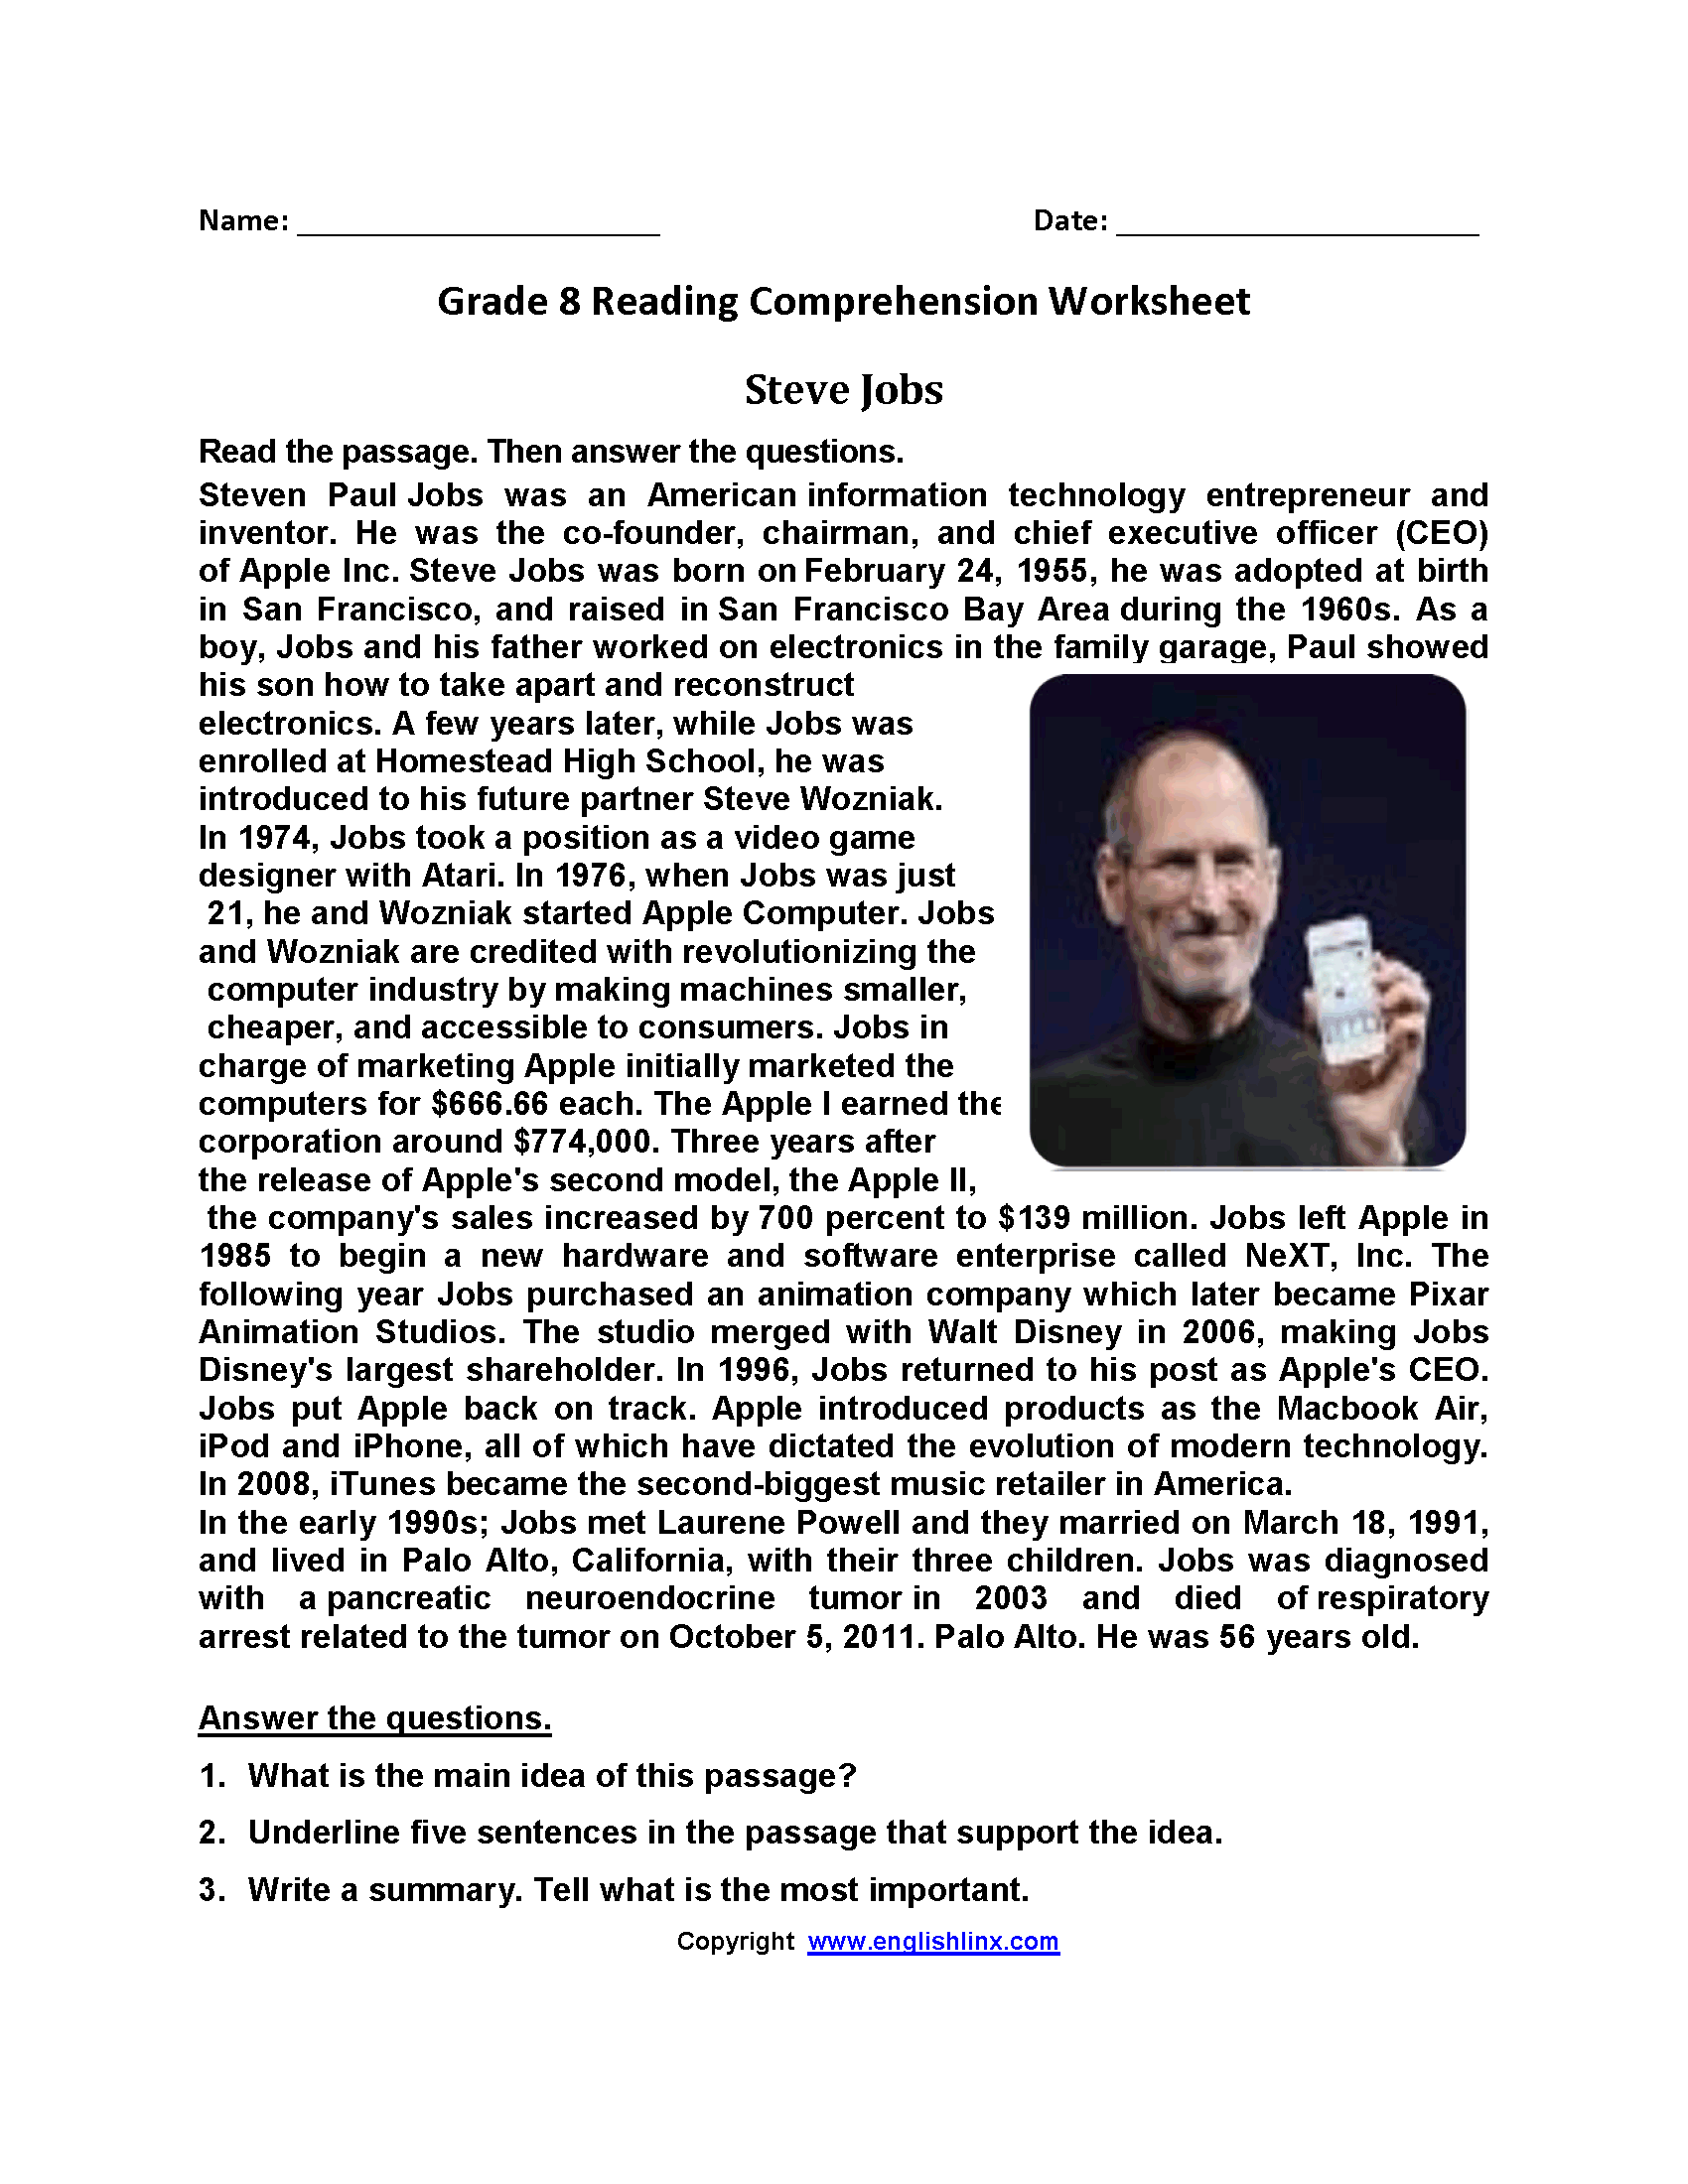 Steve Jobs Eighth Grade Reading Worksheets